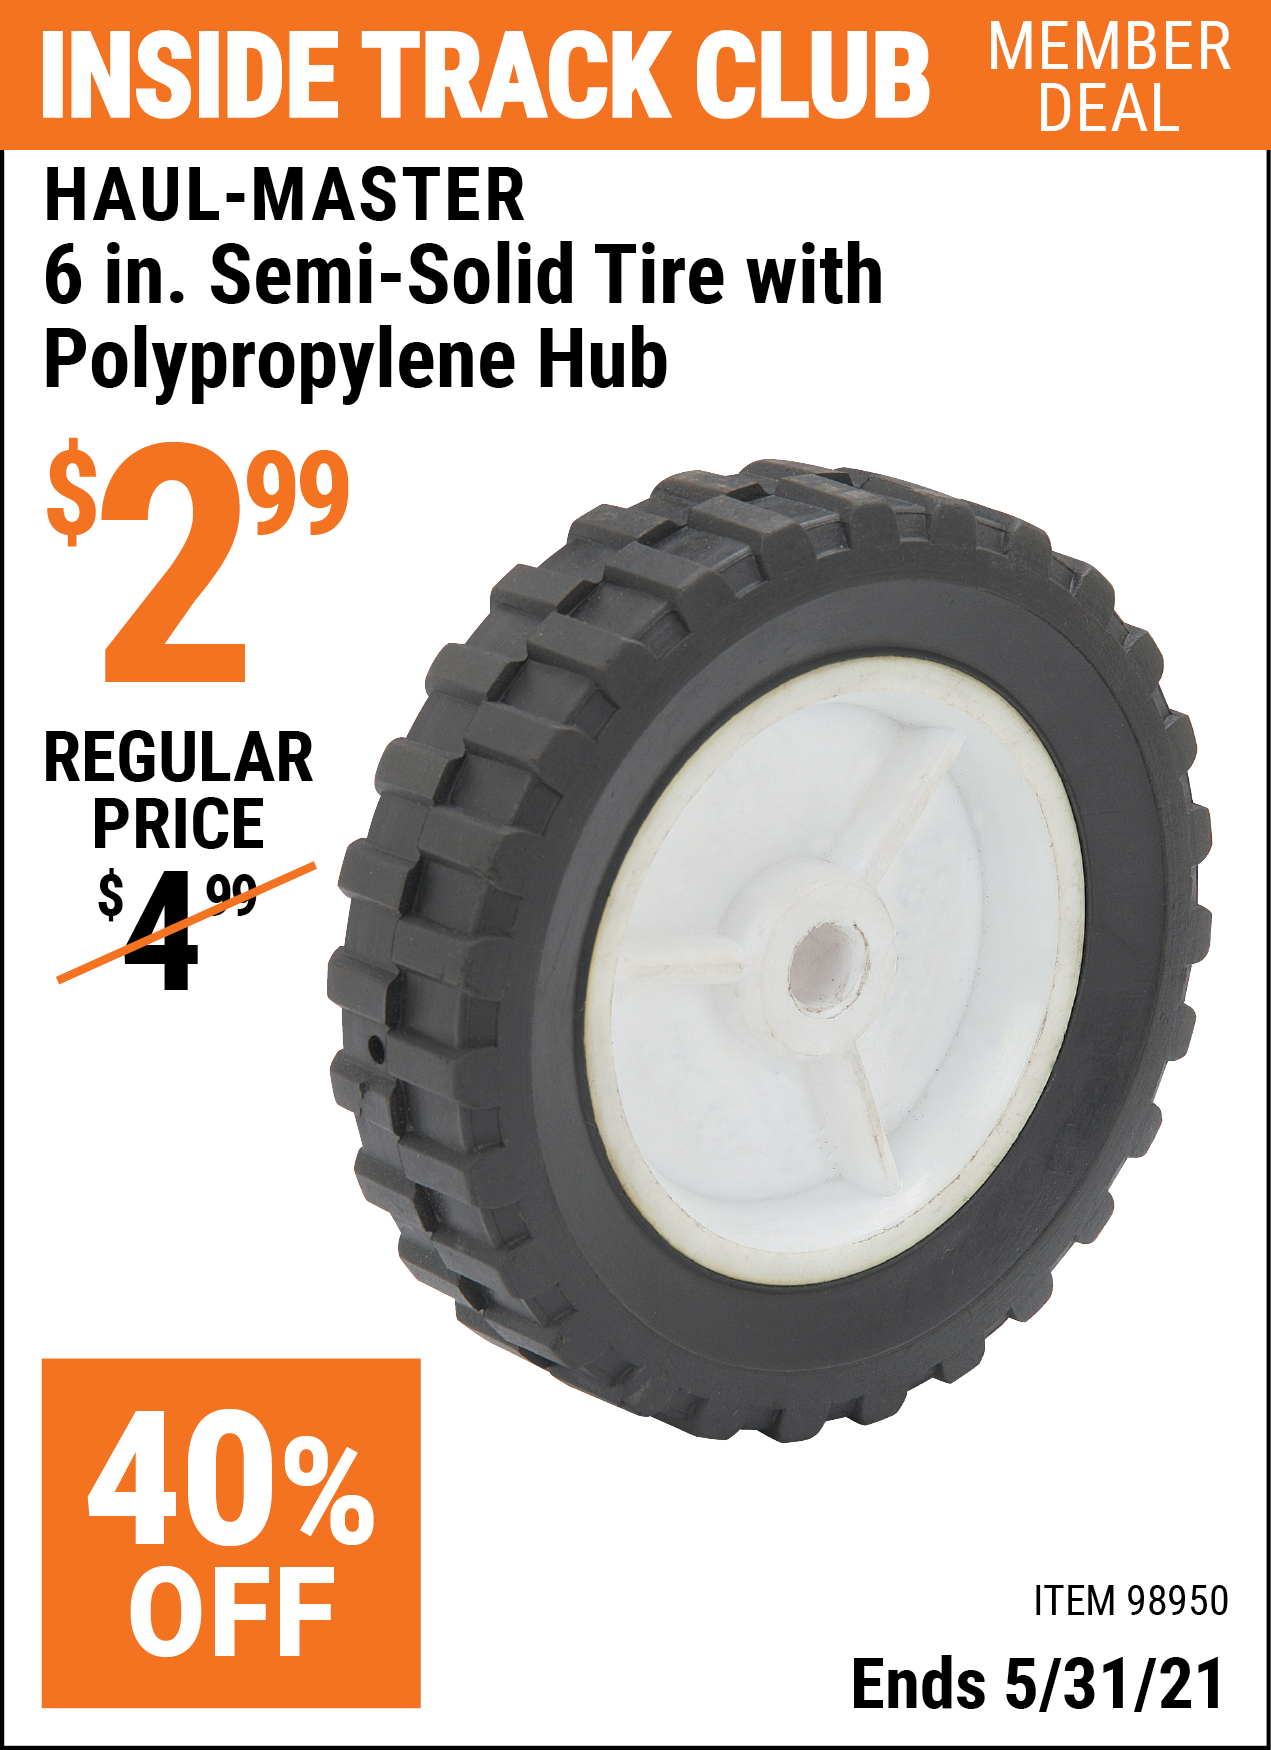 Inside Track Club members can buy the HAUL-MASTER 6 in. Semi-Solid Tire with Polypropylene Hub (Item 98950) for $2.99, valid through 5/31/2021.